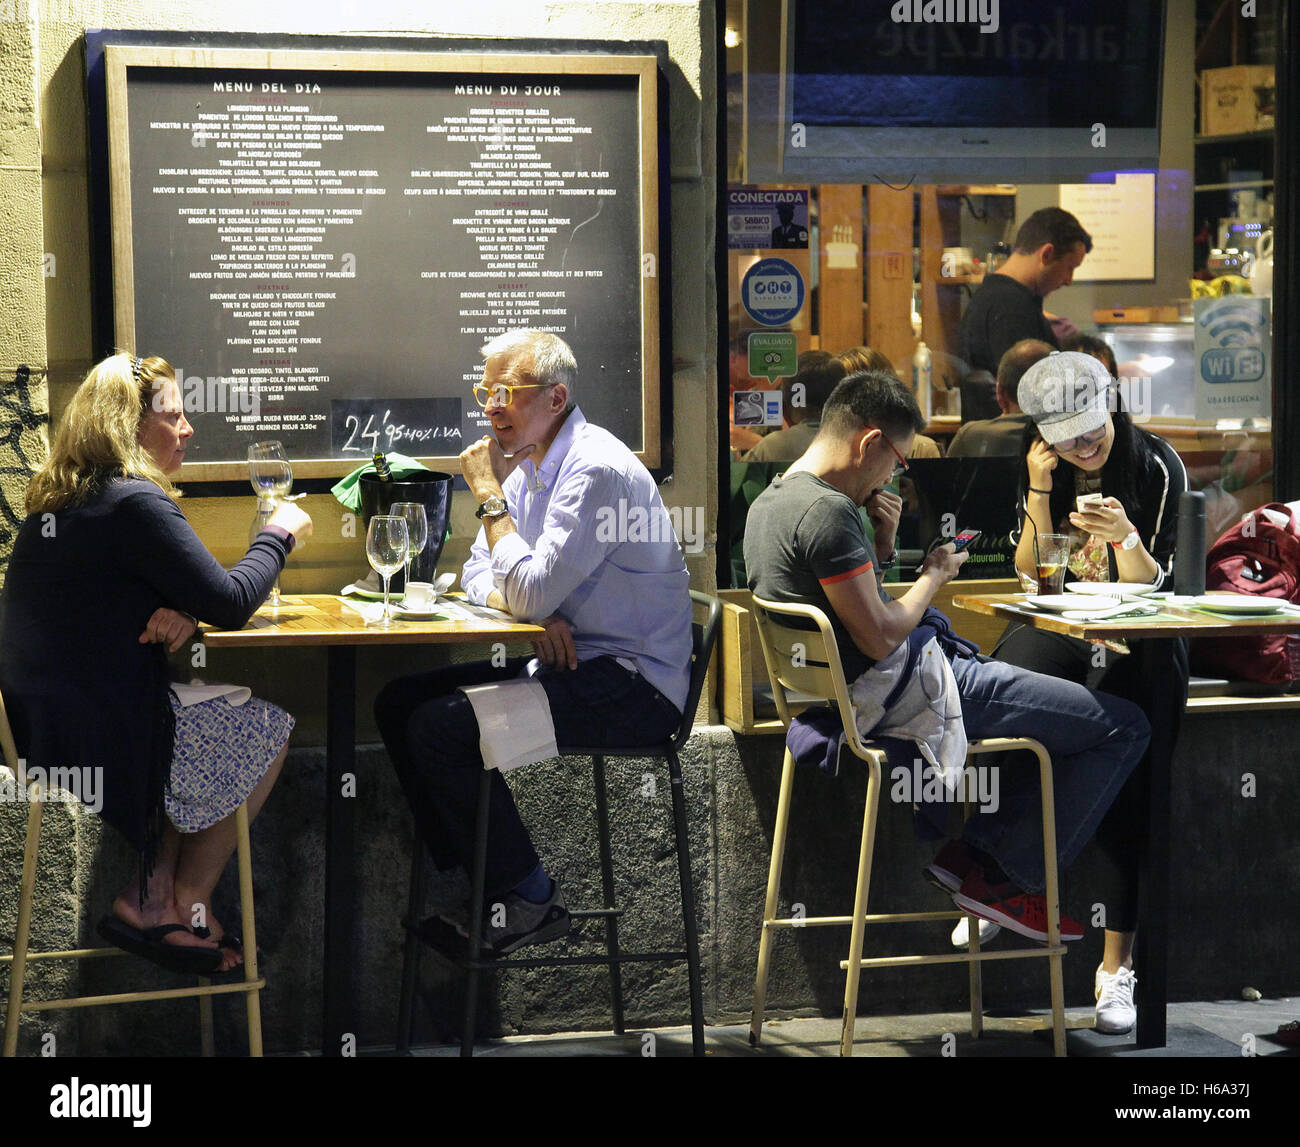 Outside diner at night with smartphones - Stock Image